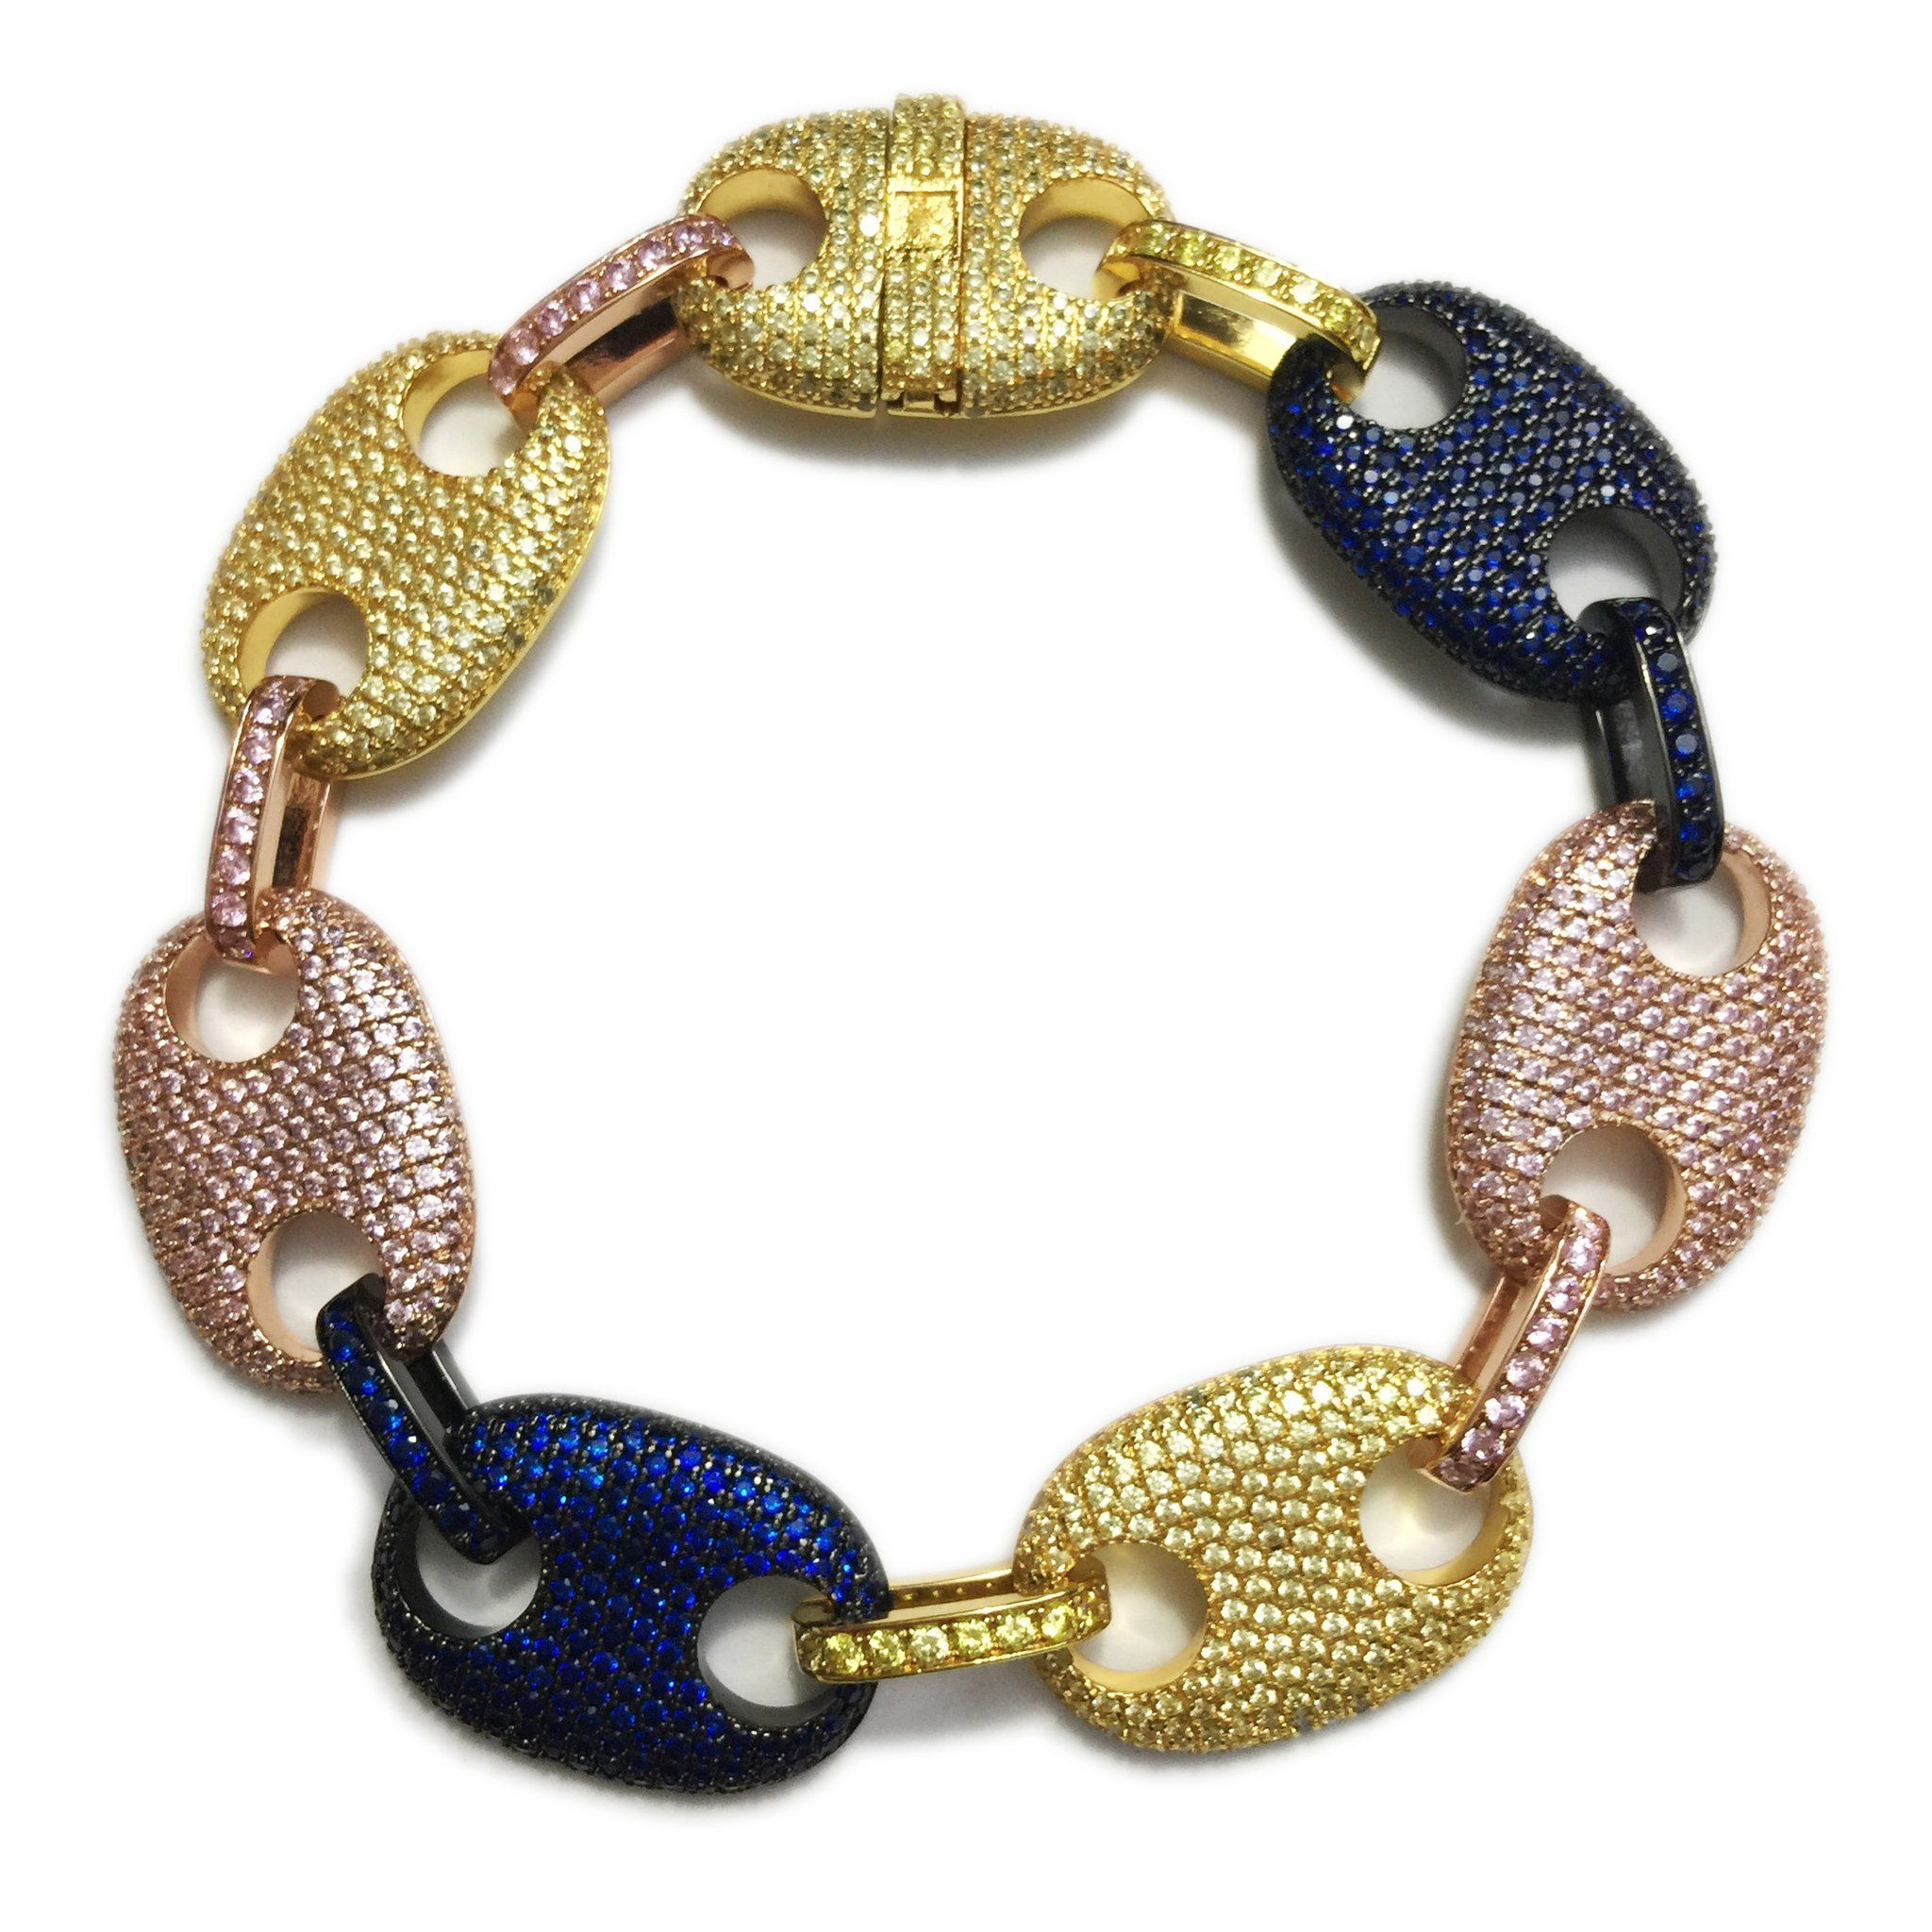 f511e02a44ba3 Iced out gucci link mariner link bracelet 18mm Multi-colored in 2019 ...